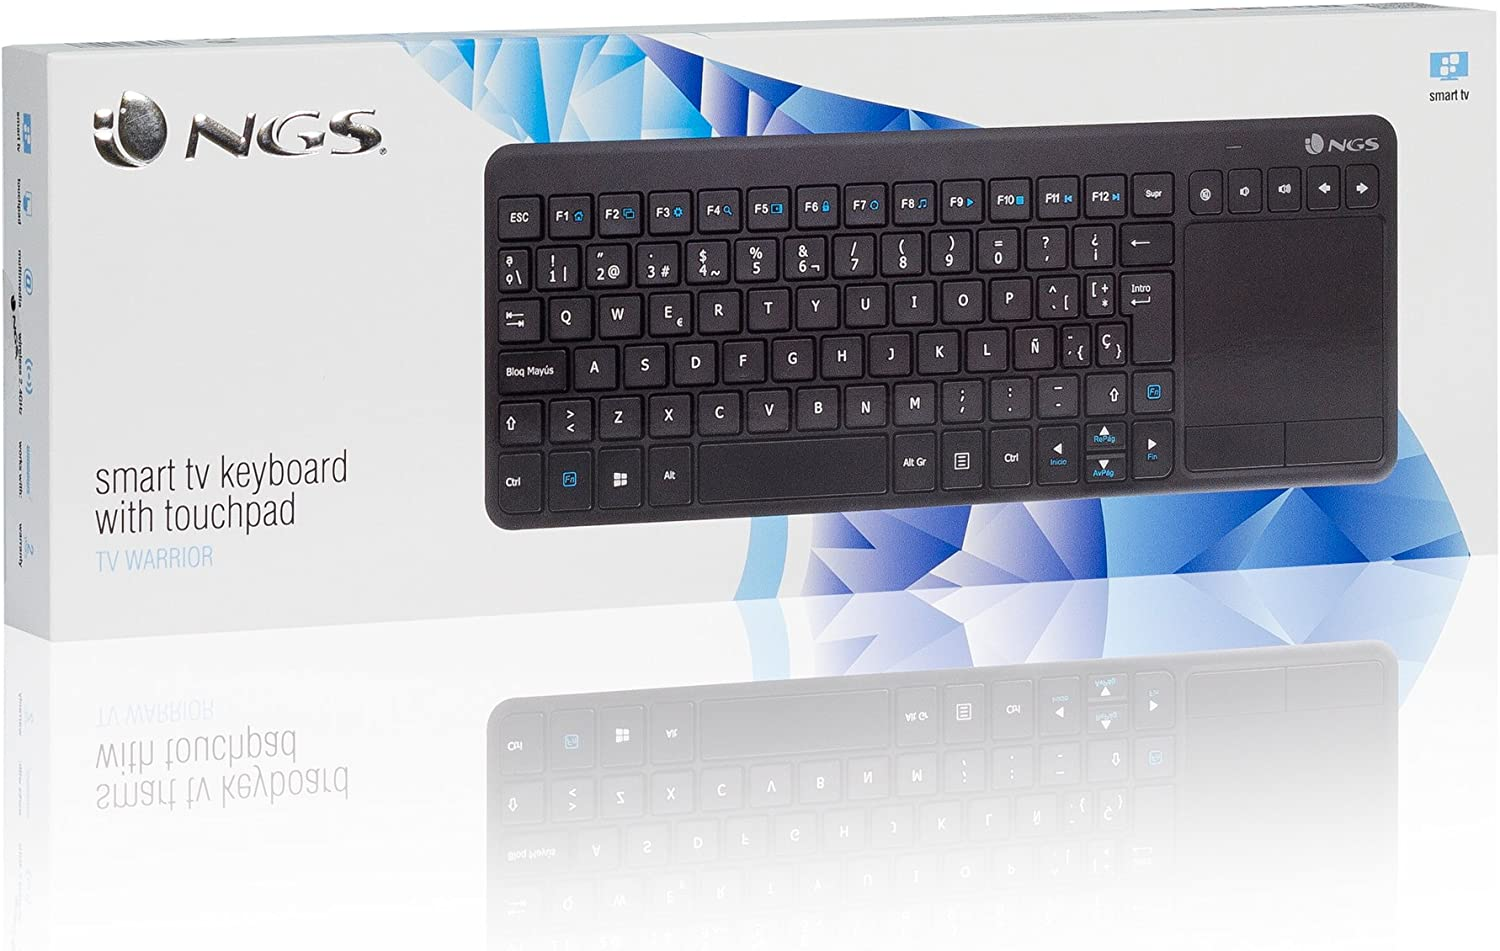 NGS TV Warrior Teclado inalámbrico con Touchpad y Teclas Multimedia para SmartTV, Querty, Color Negro: Ngs: Amazon.es: Informática